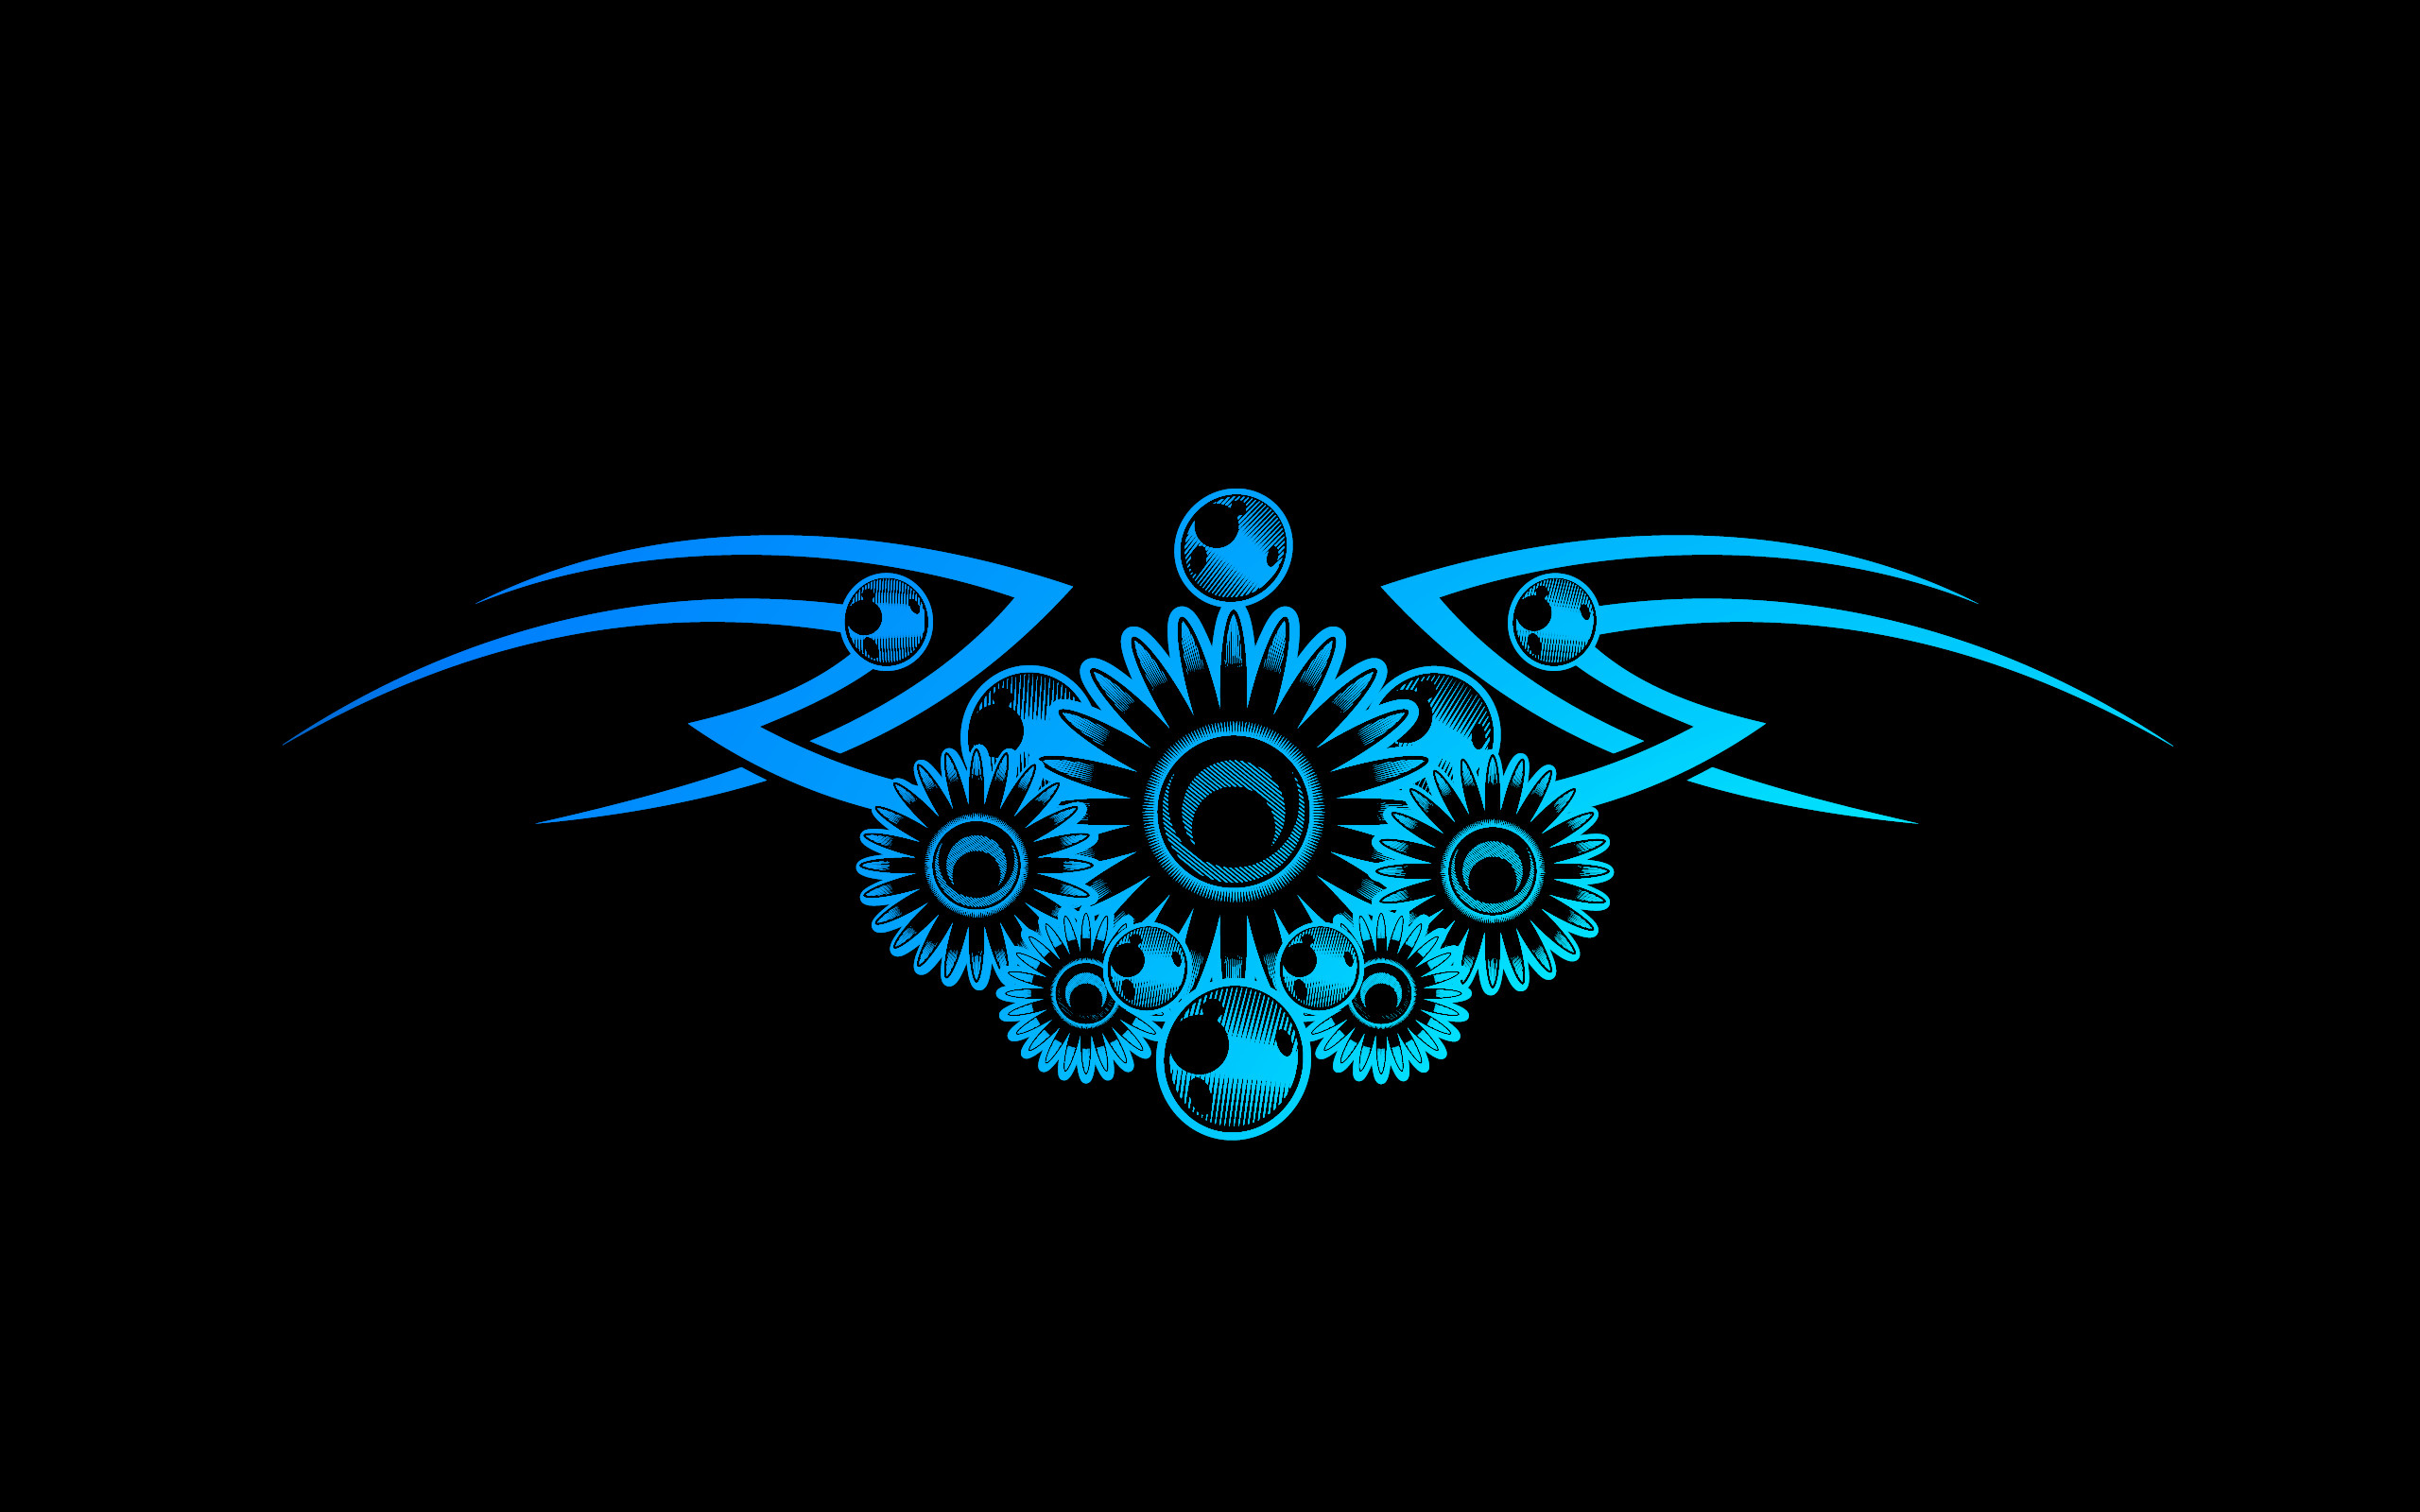 2560x1600 Tribal Tattoo 2 Wallpaper By Jeshans Customization Hdtv